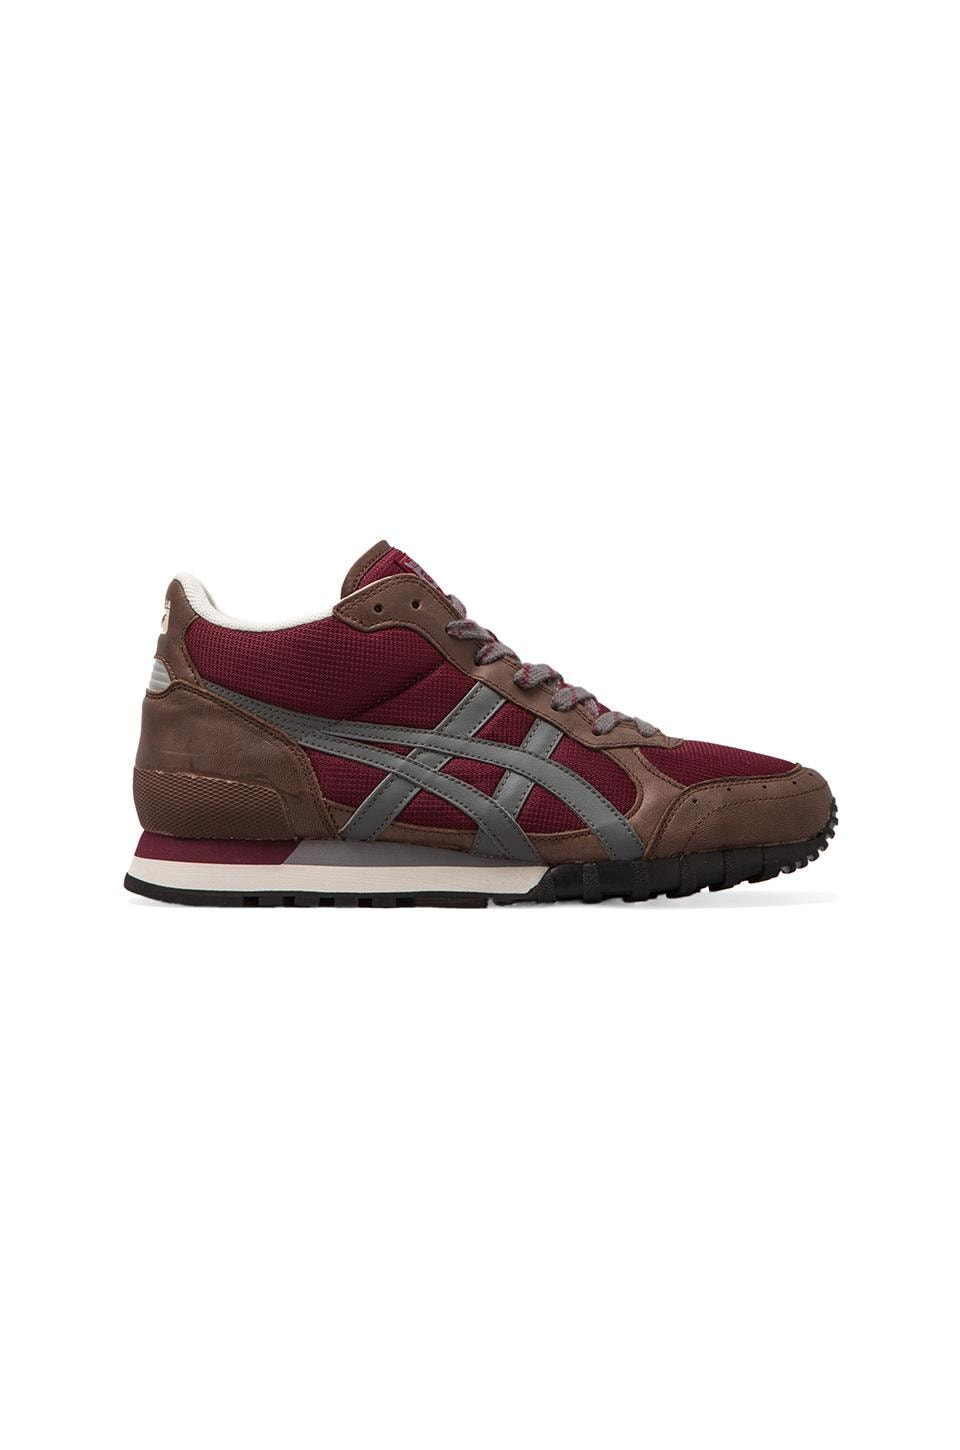 Onitsuka Tiger Colorado Eighty-Five MT in Maroon/Charcoal